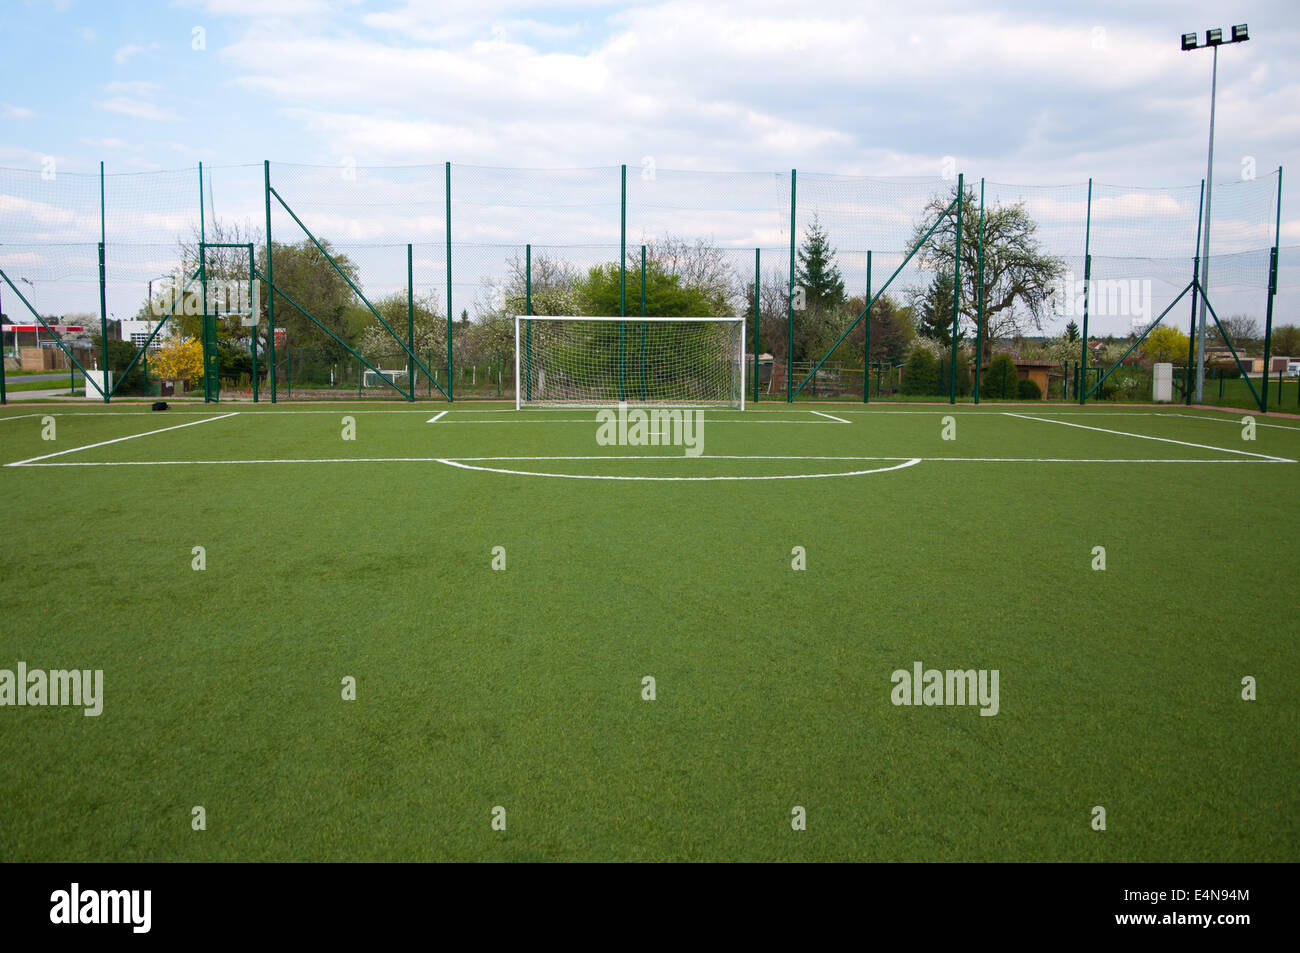 penalty area on football court - Stock Image